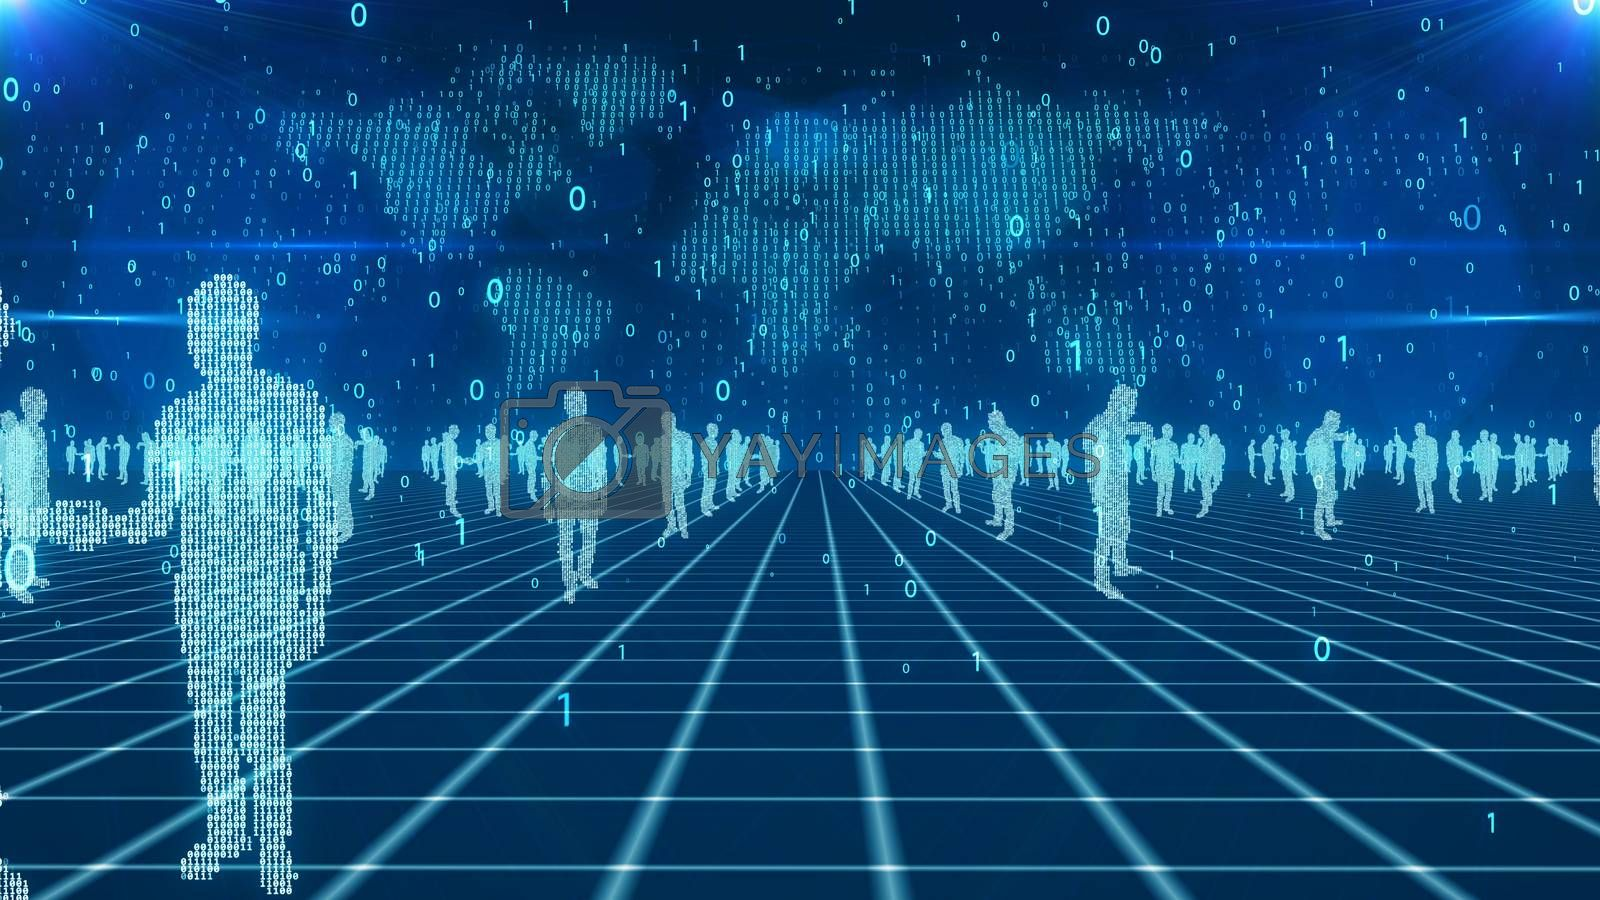 A futuristic 3d rendering of digital business people in light blue colors placed on a network from crossed lines. The digital blue world map with falling zeroes and ones is seen in the background.